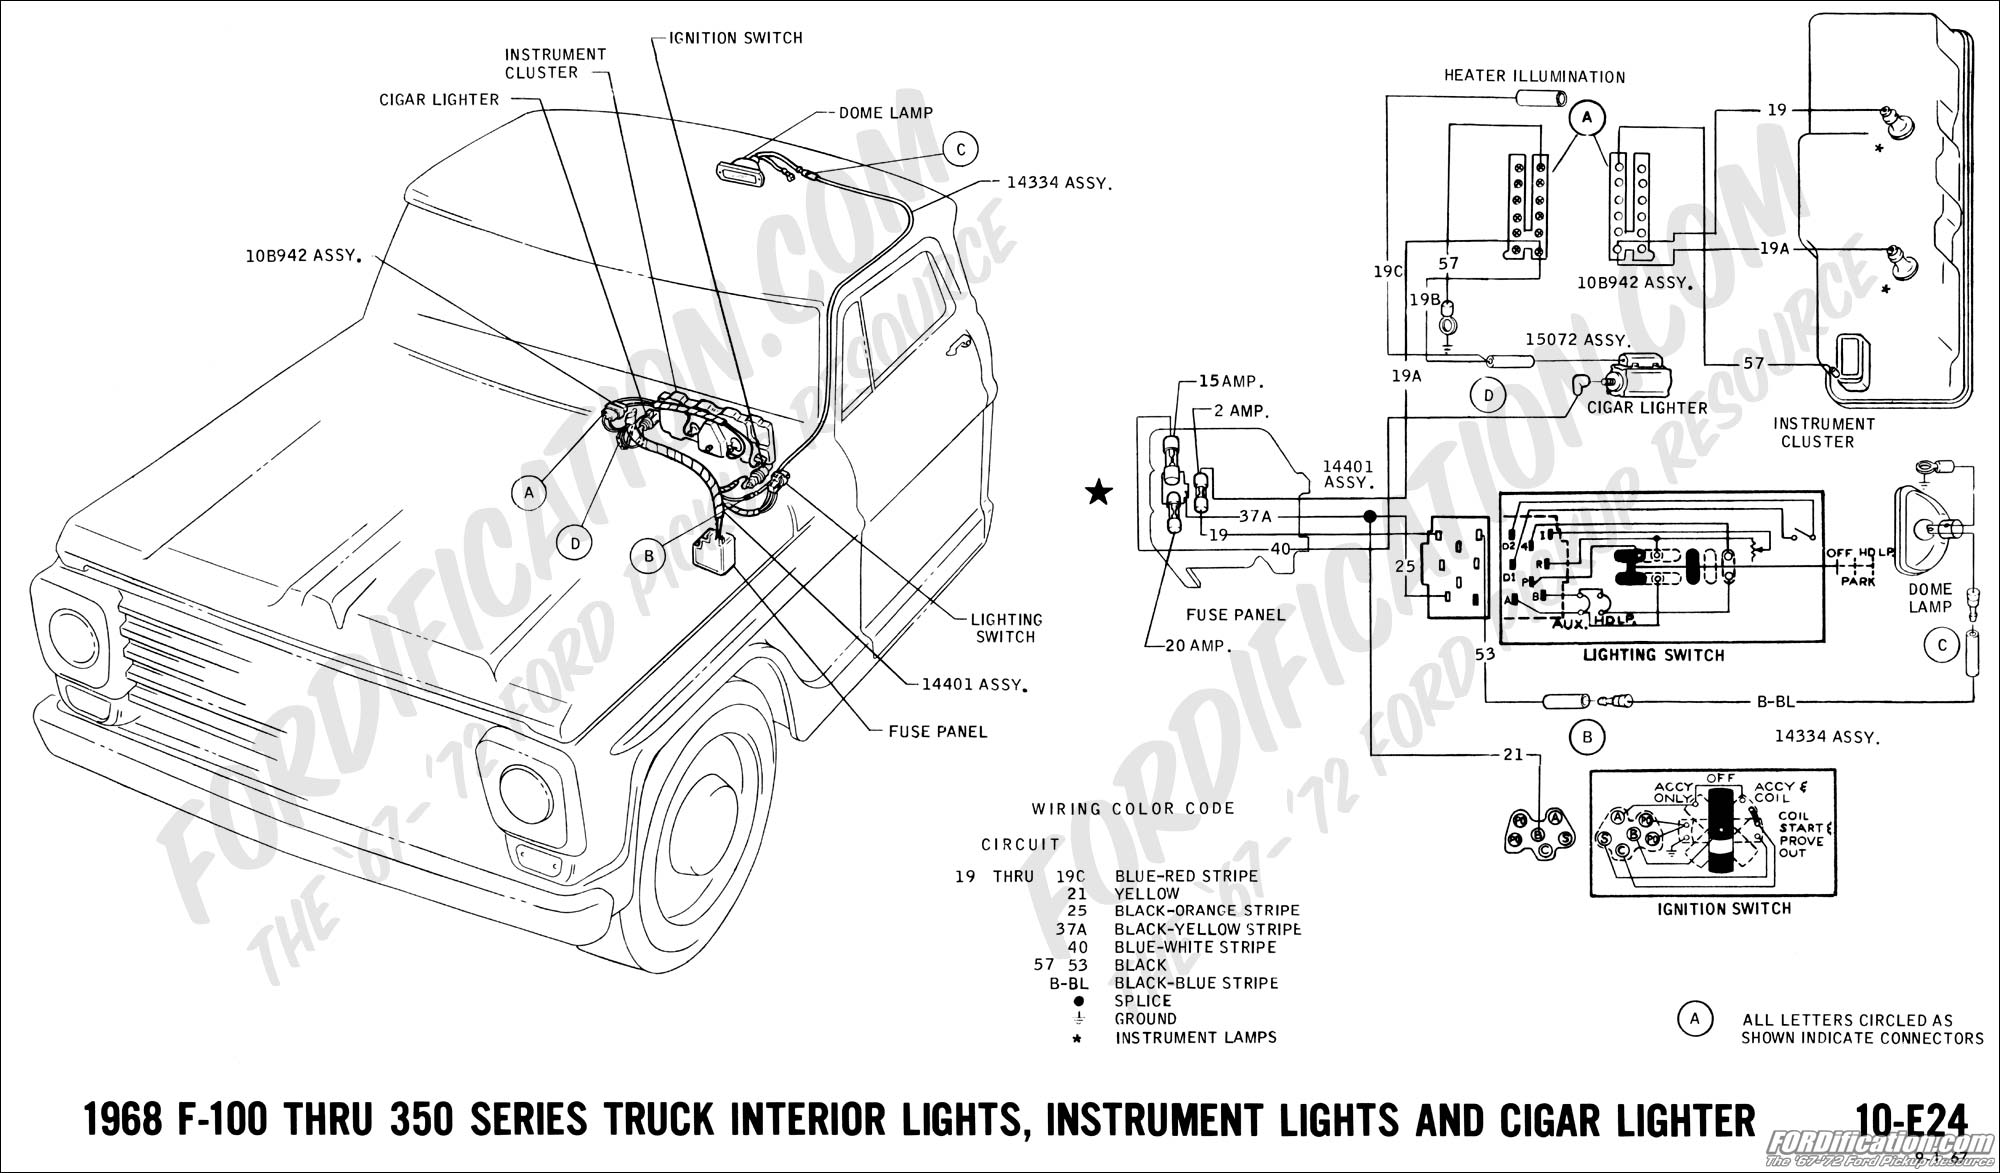 1968 ford f 250 camper special wiring diagram 78 ford f 250 steering column wiring diagram ford truck technical drawings and schematics - section h ... #9